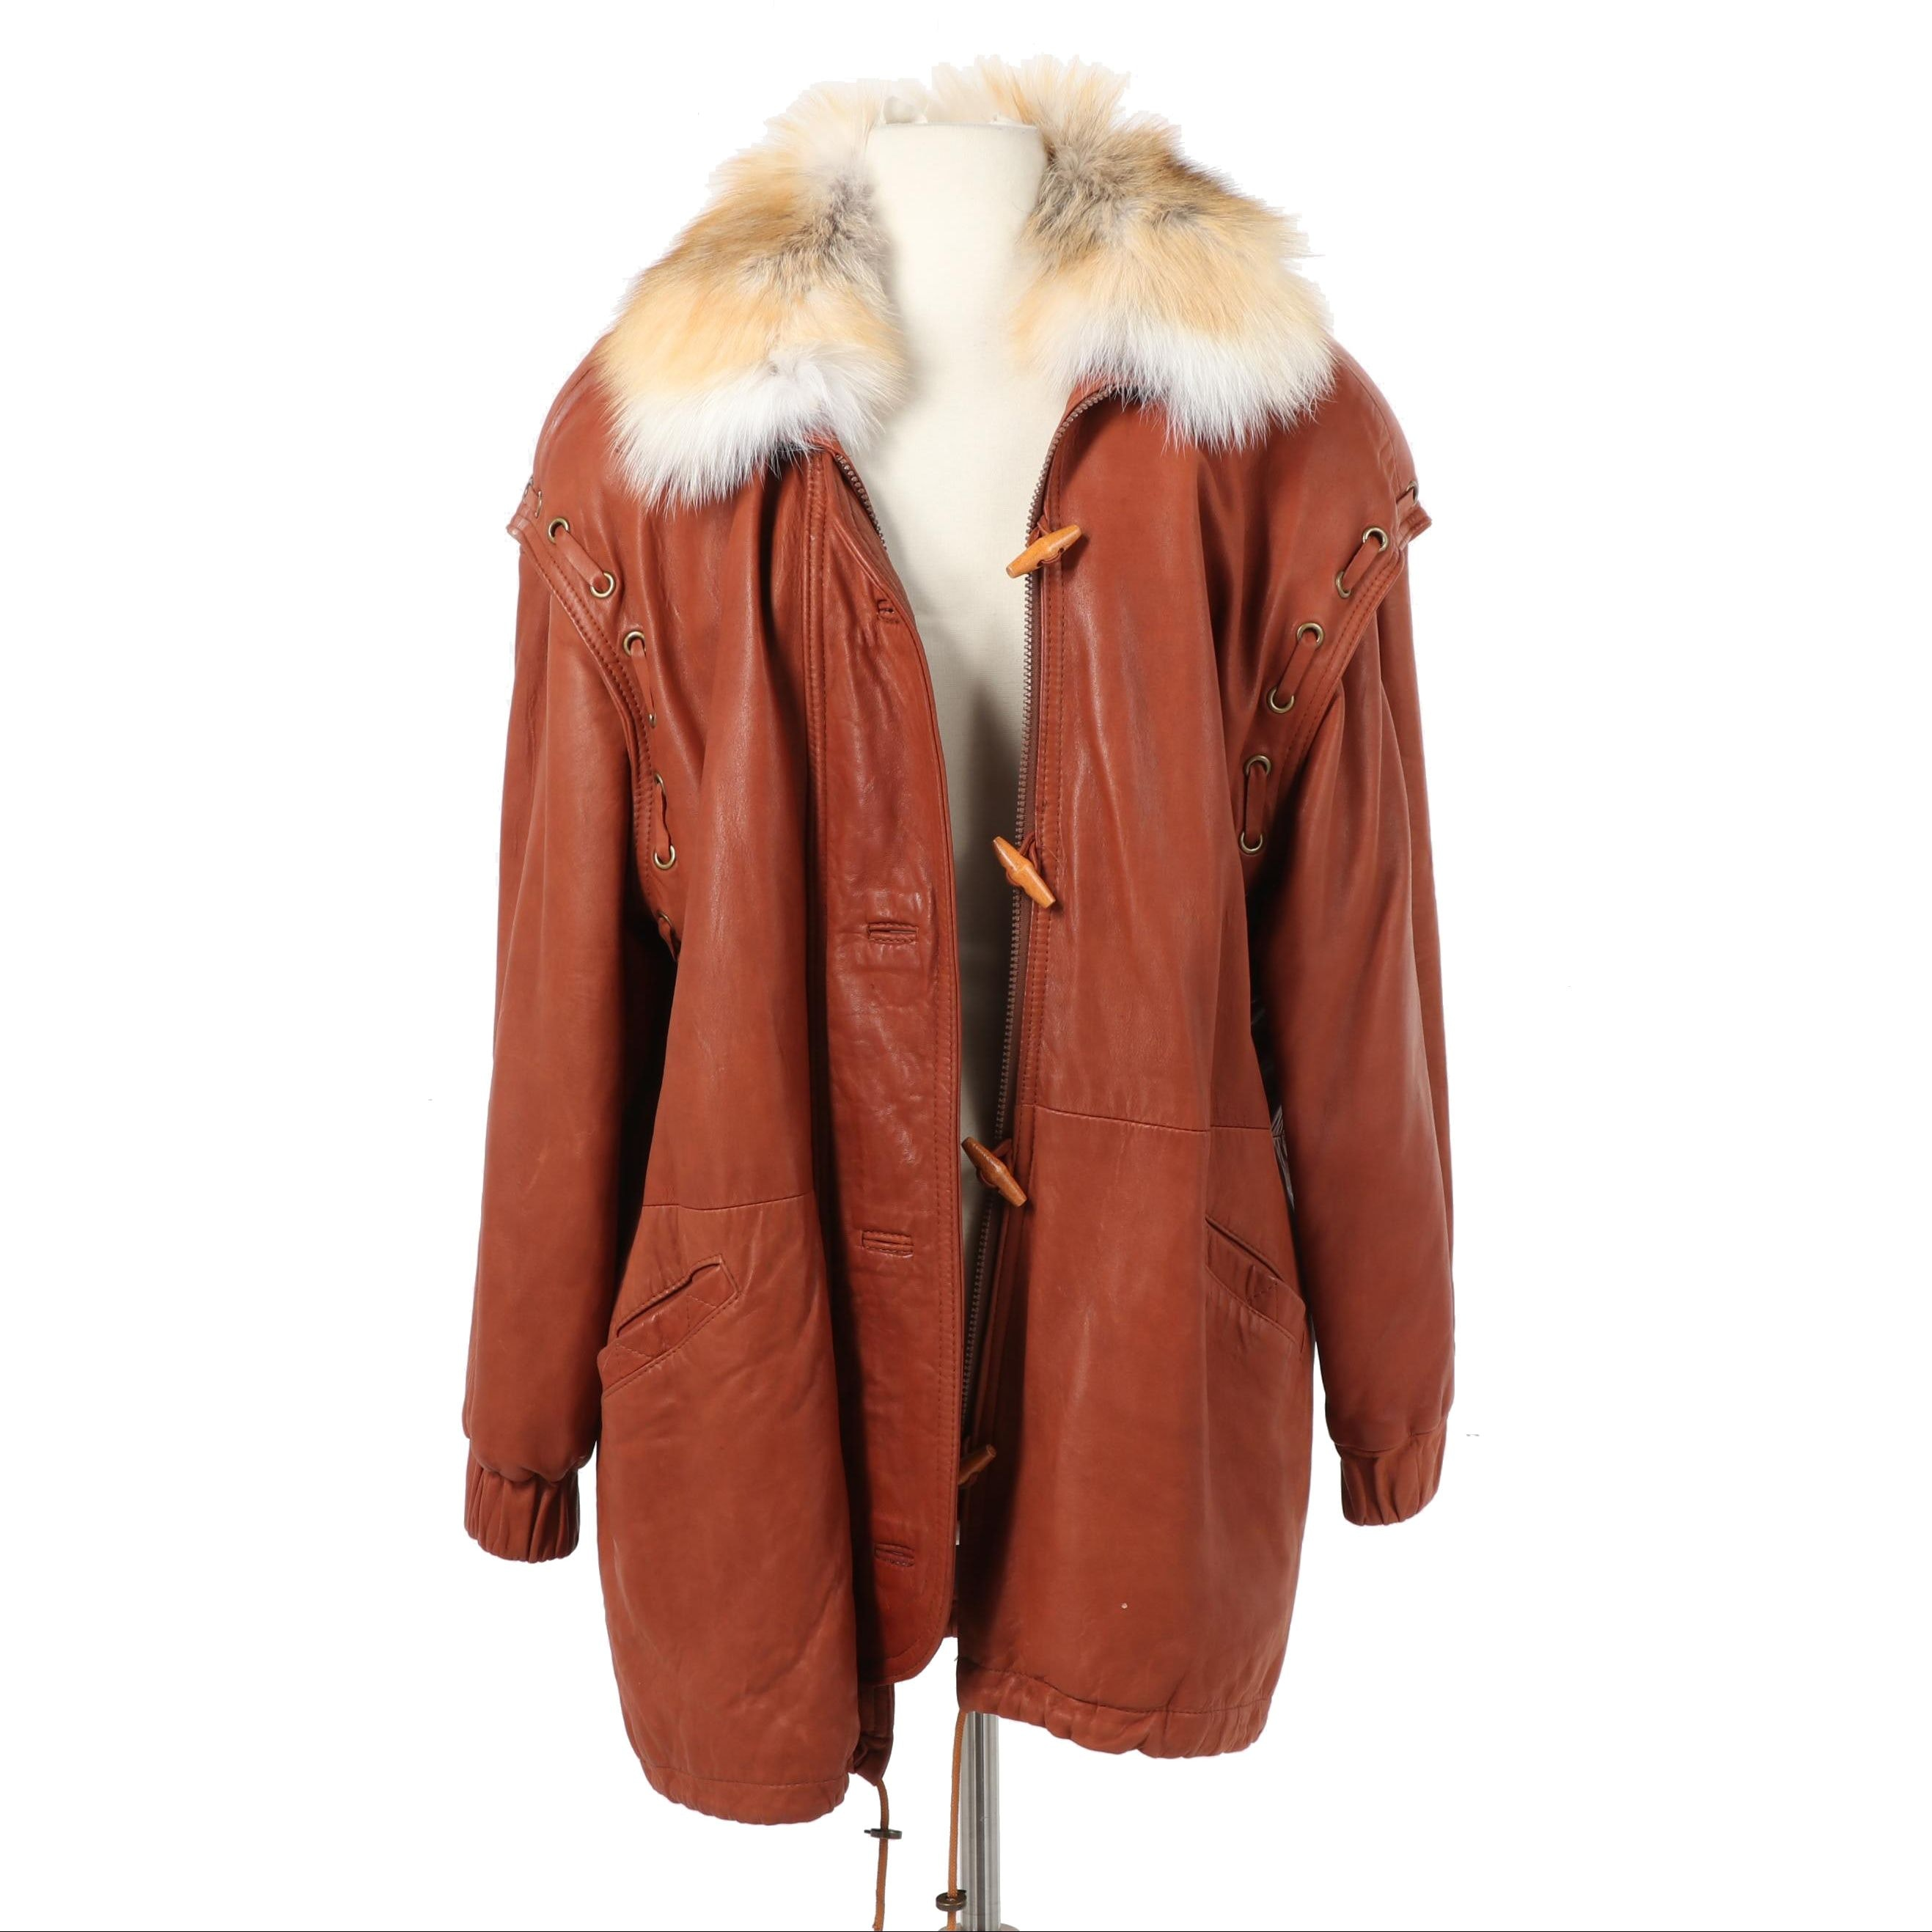 Damselle Ltd Convertible Leather Coat with Fox Fur Collar